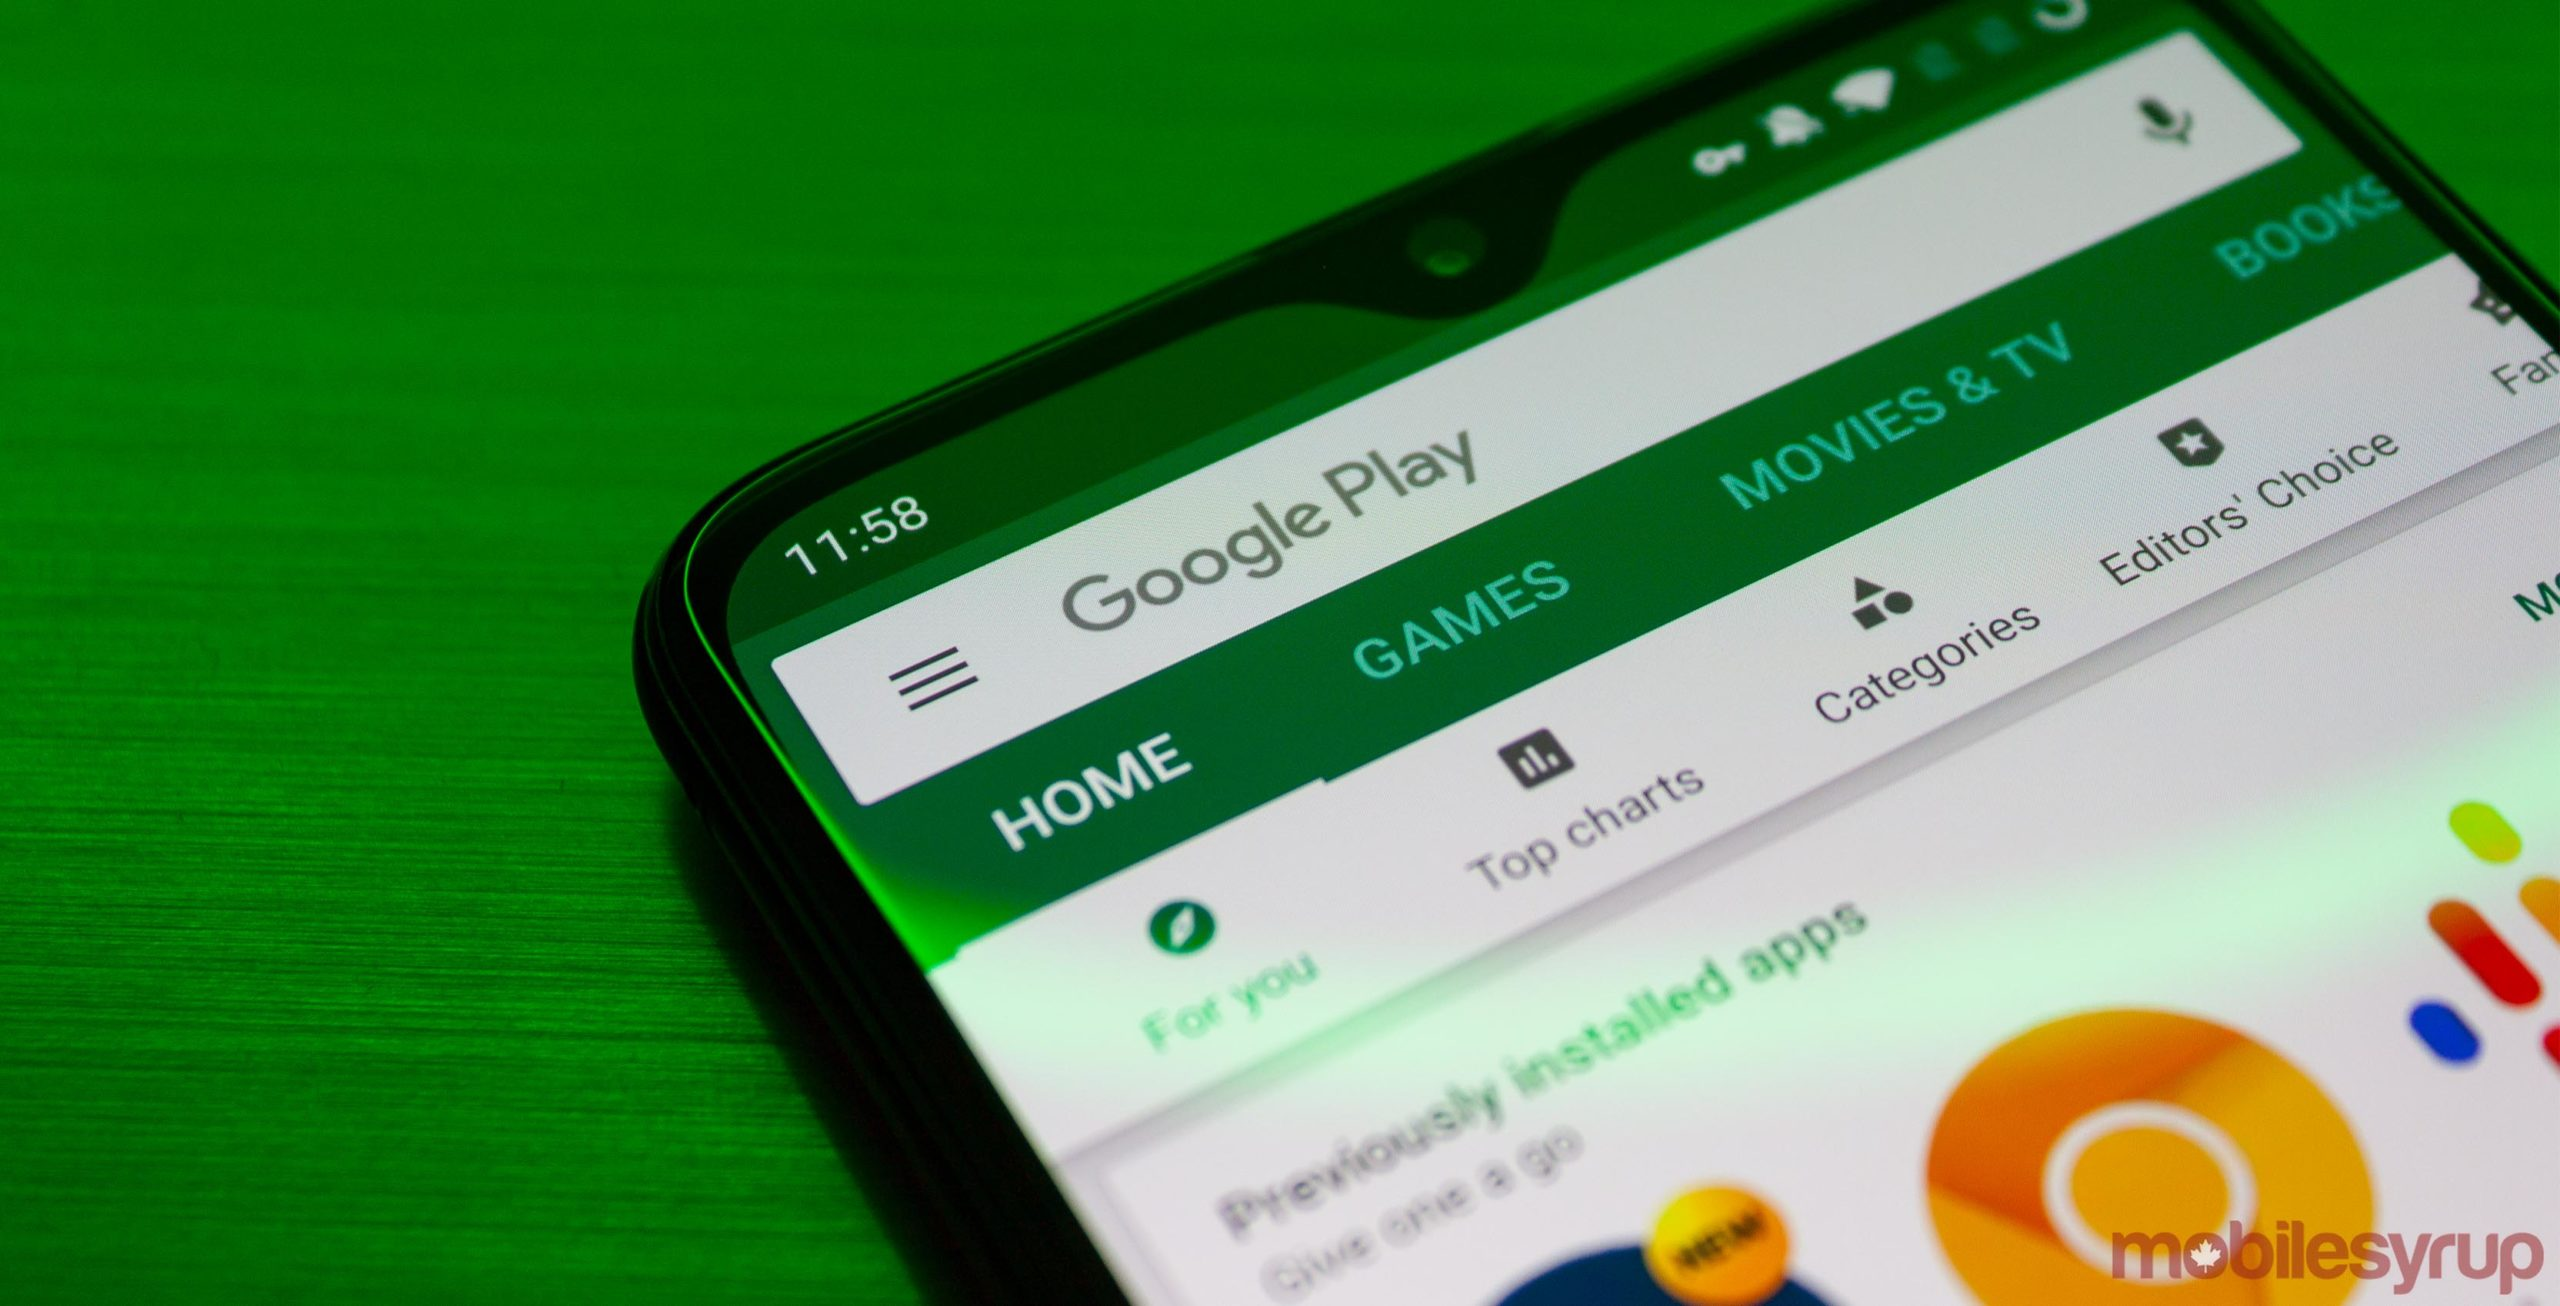 Google Play hides search results for 'corona virus' Android apps